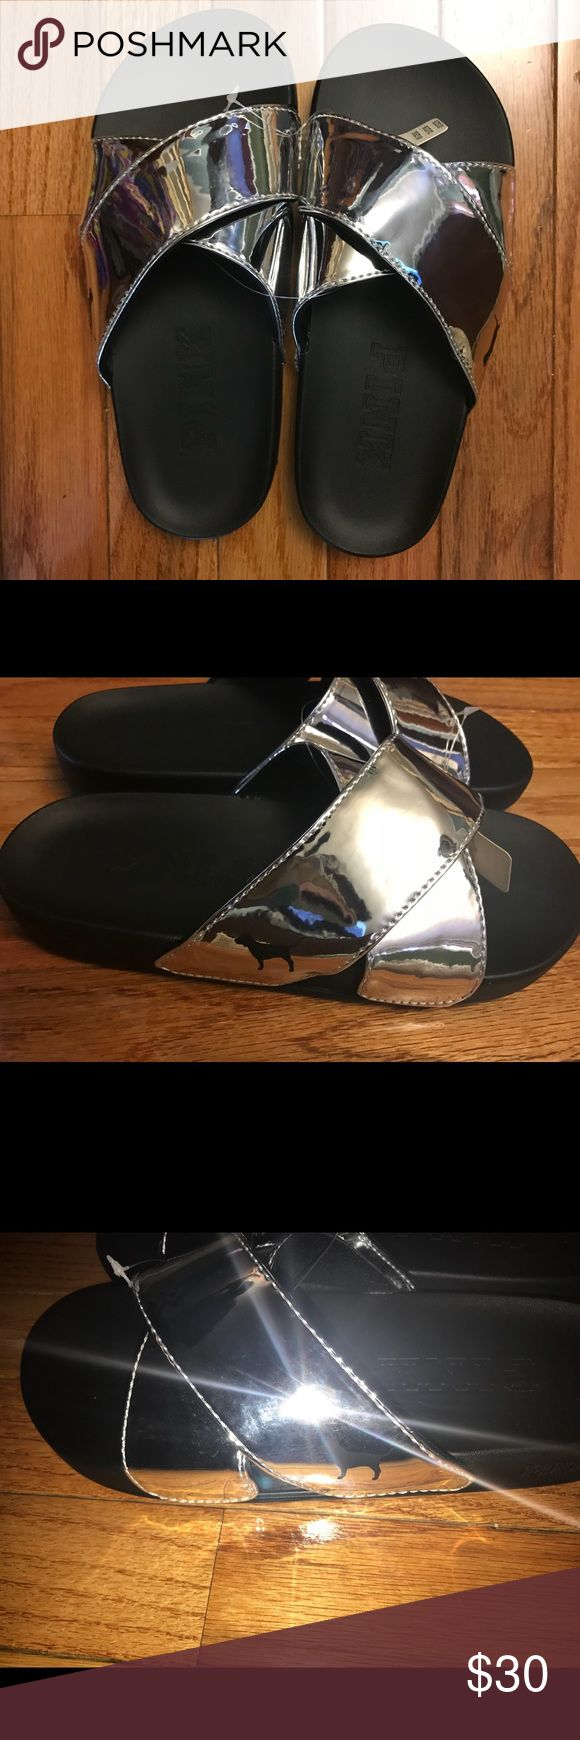 Victor Secret silver slide Brand new Criss Cross Slides from Victoria's Secret PINK. Silver, size Small 5/6  The bottom is a bendable thick rubber, while the straps have some cushioning. The sole has the PINK logo embedded. PINK Victoria's Secret Shoes Slippers